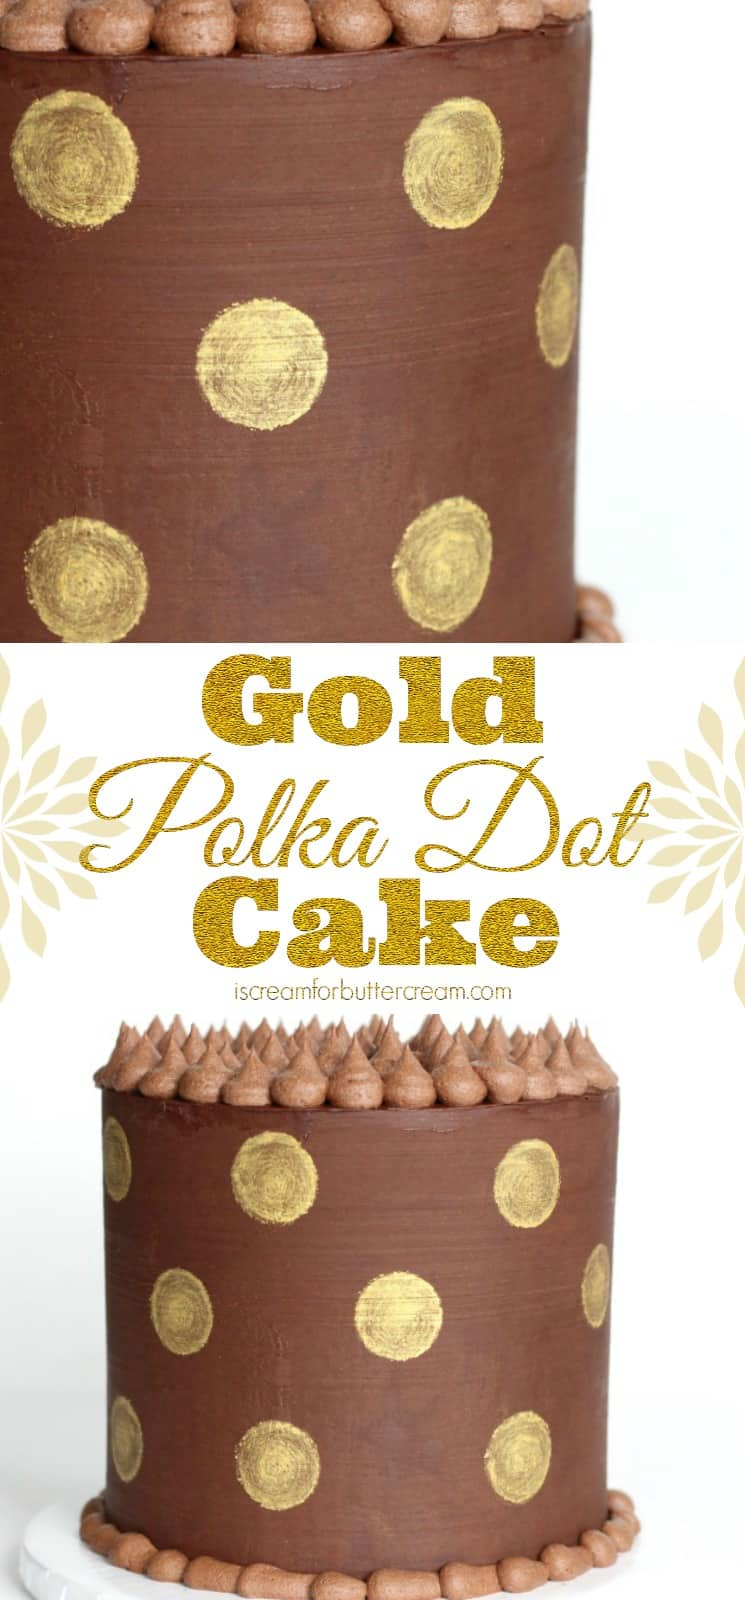 Gold Polka Dot Ganache Cake Pinterest Graphic